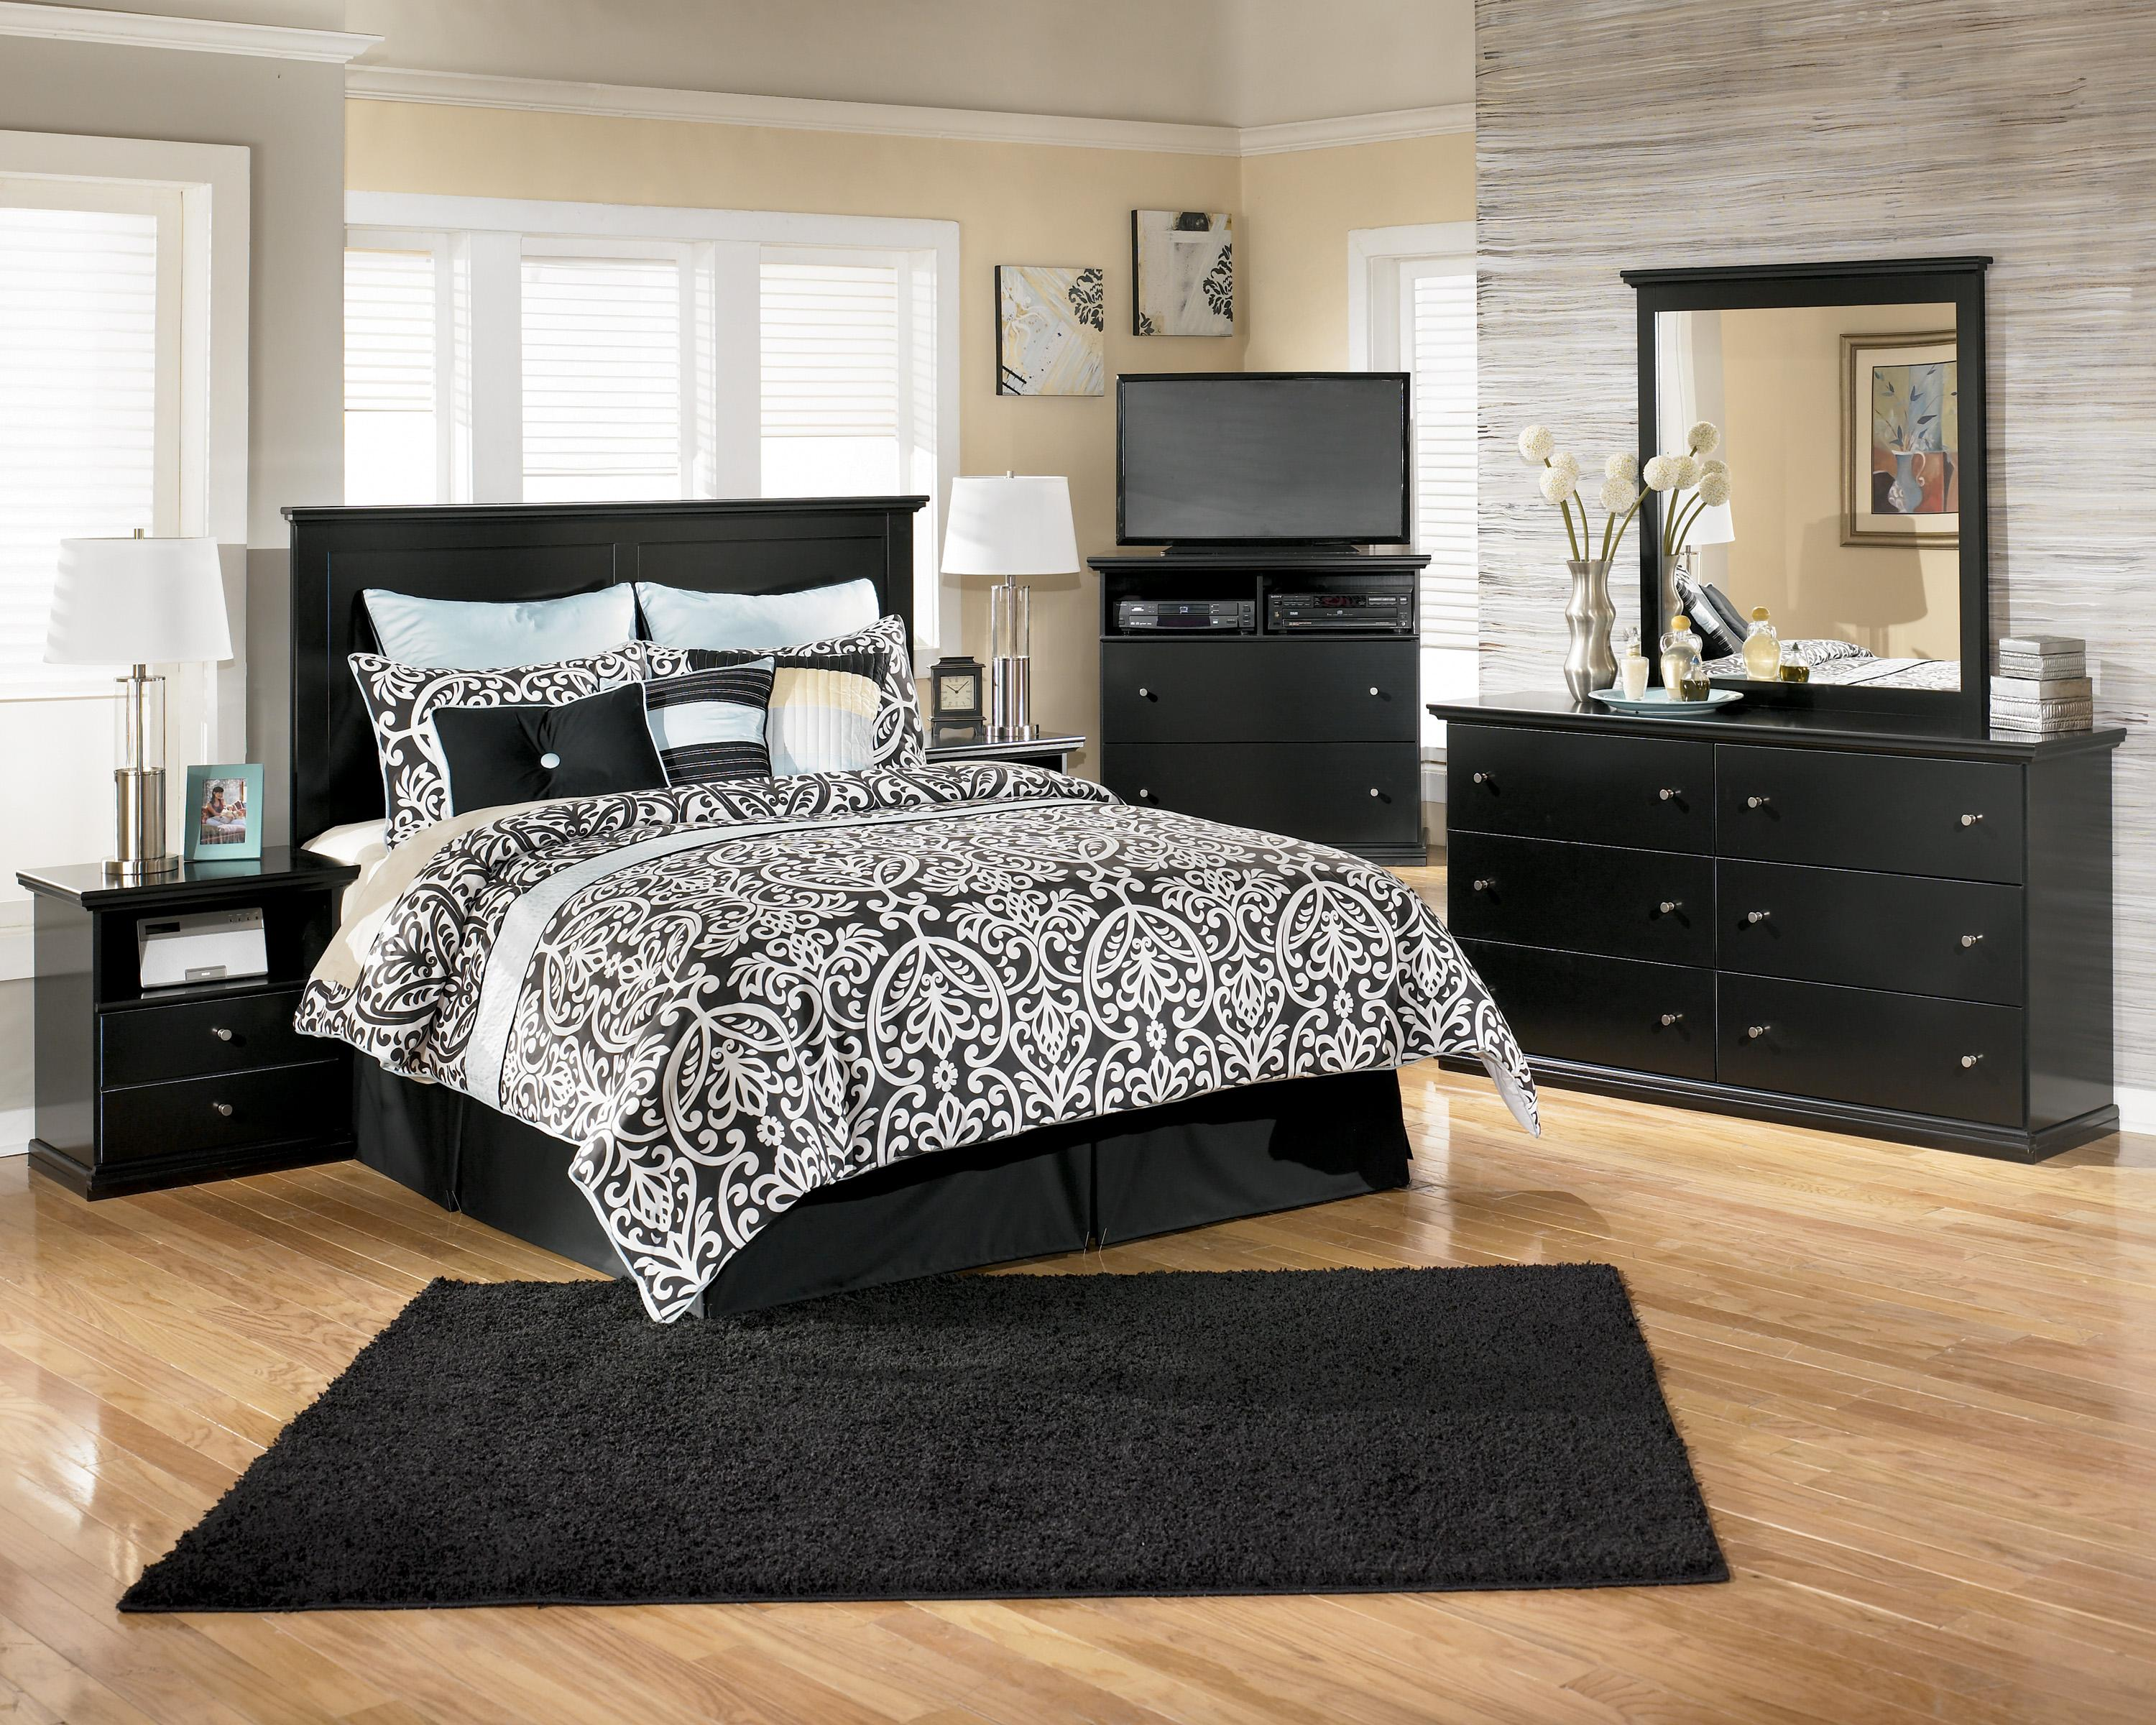 Ashley Furniture Bedroom Sets S maribel (138)signature designashley - j & j furniture